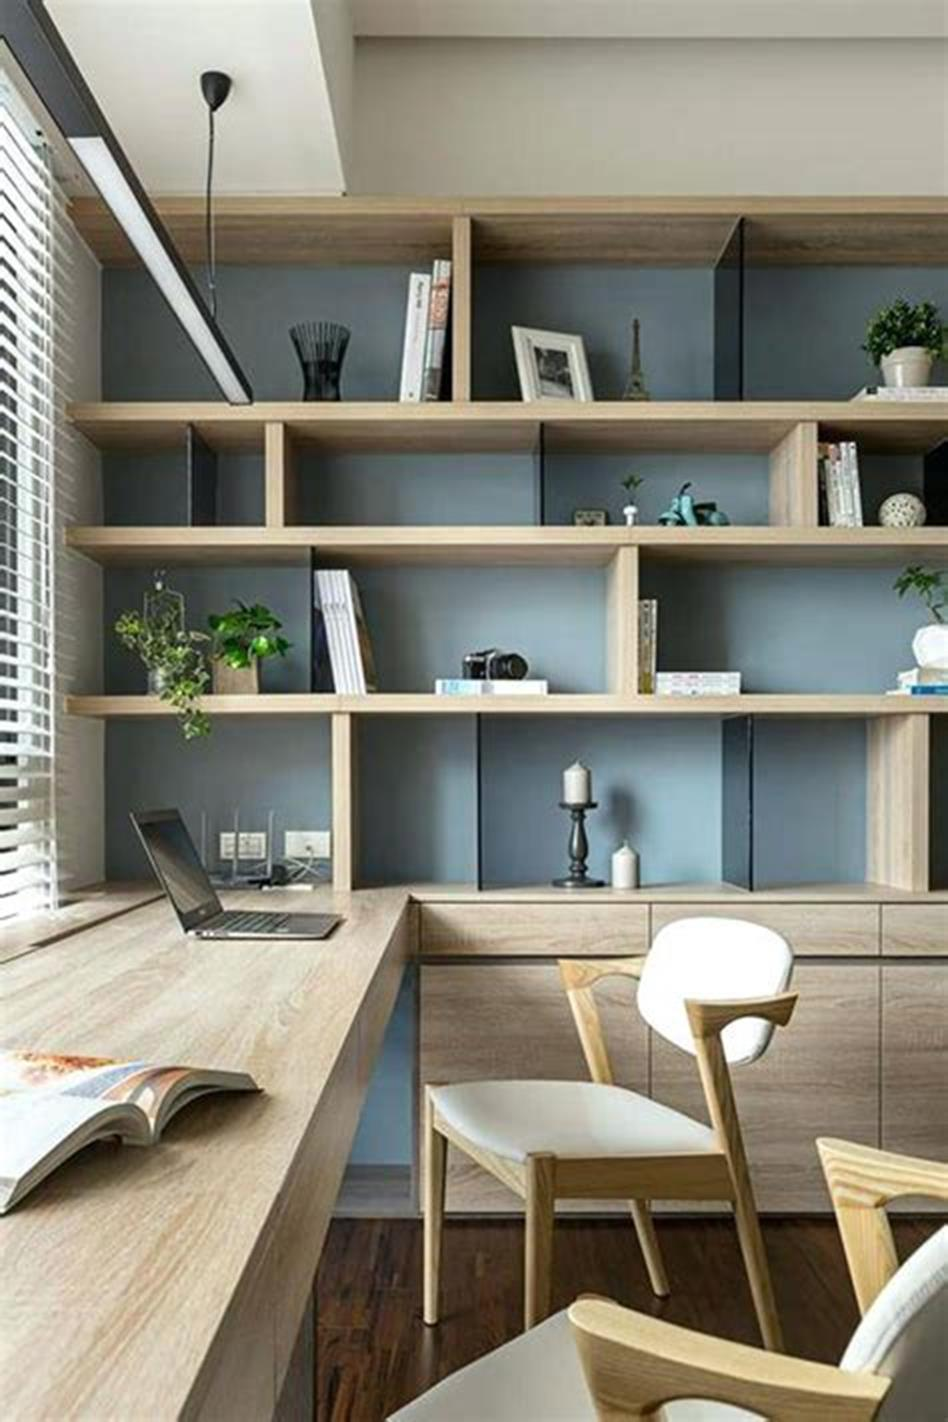 Decorating Small Open Floor Plan Living Room And Kitchen: 50 Best Small Space Office Decorating Ideas On A Budget